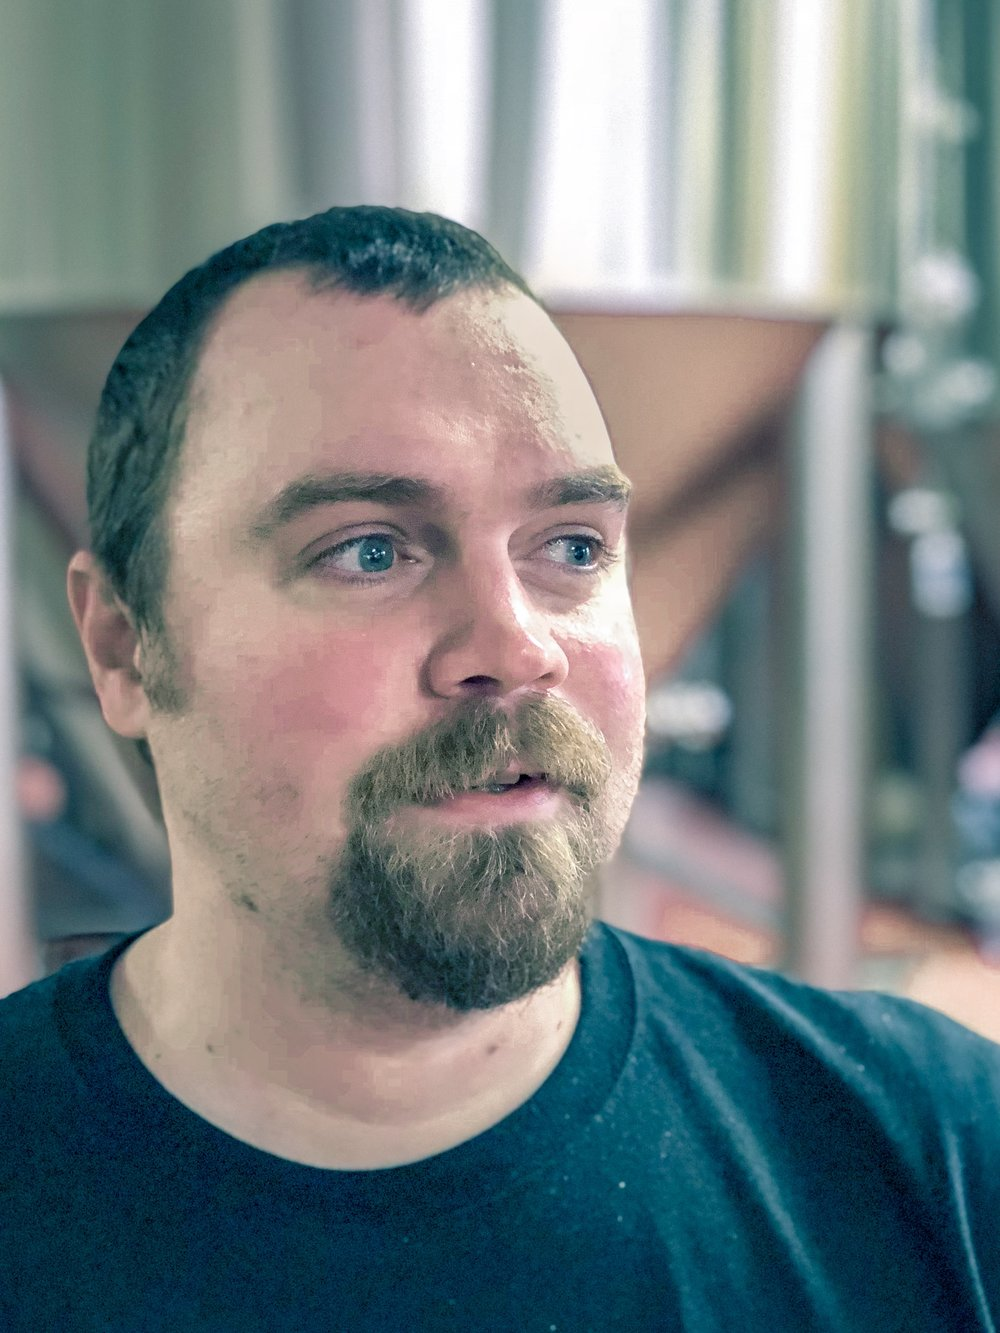 Prospect (Brewery Assistant)  Justin Skow   Justin is from Grand Forks, ND, and has worked in Fargo for local businesses for the last 10 years, Justin prefers wheat ales, and is the newest member of our team.